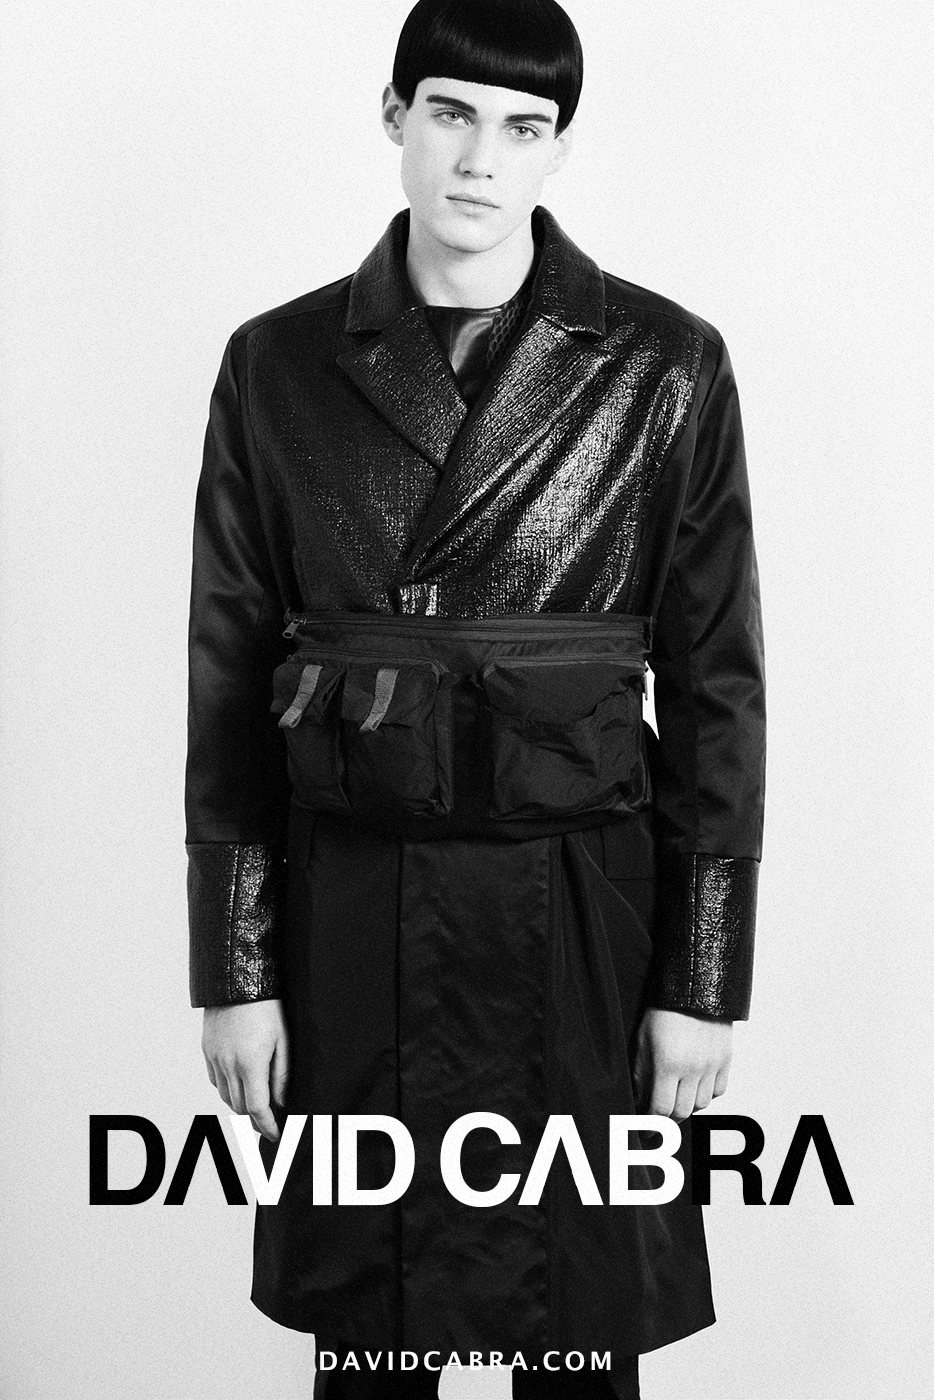 DAVID CABRA - Fall Winter 15